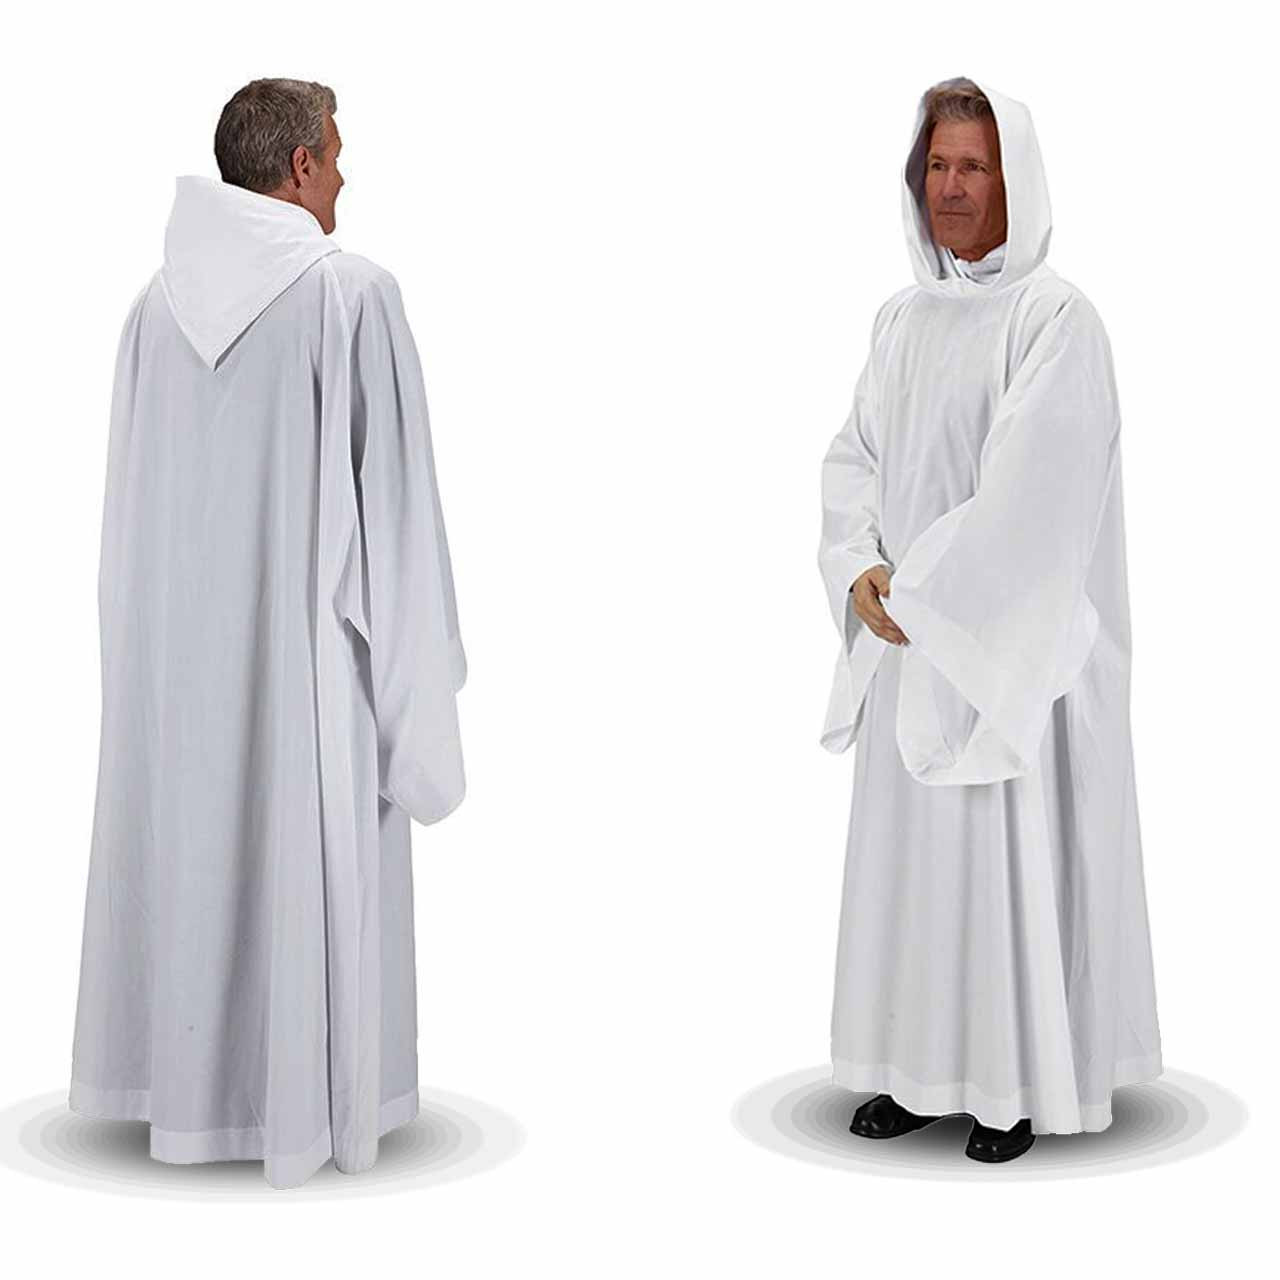 F2650 Hooded Monastic Alb from R.J. Toomey